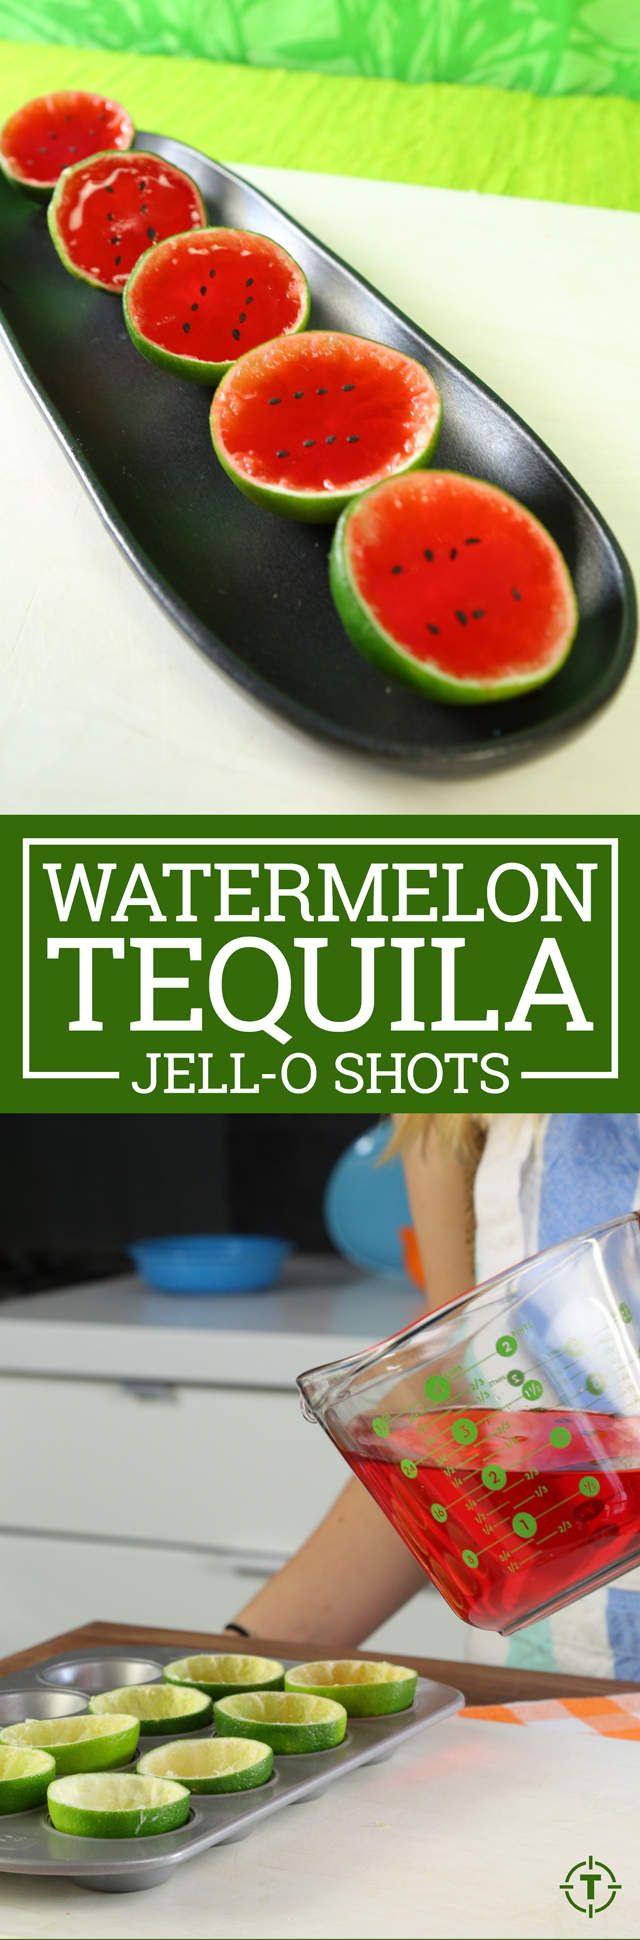 You Need to Make Watermelon Tequila Jell-O Shots This Summer